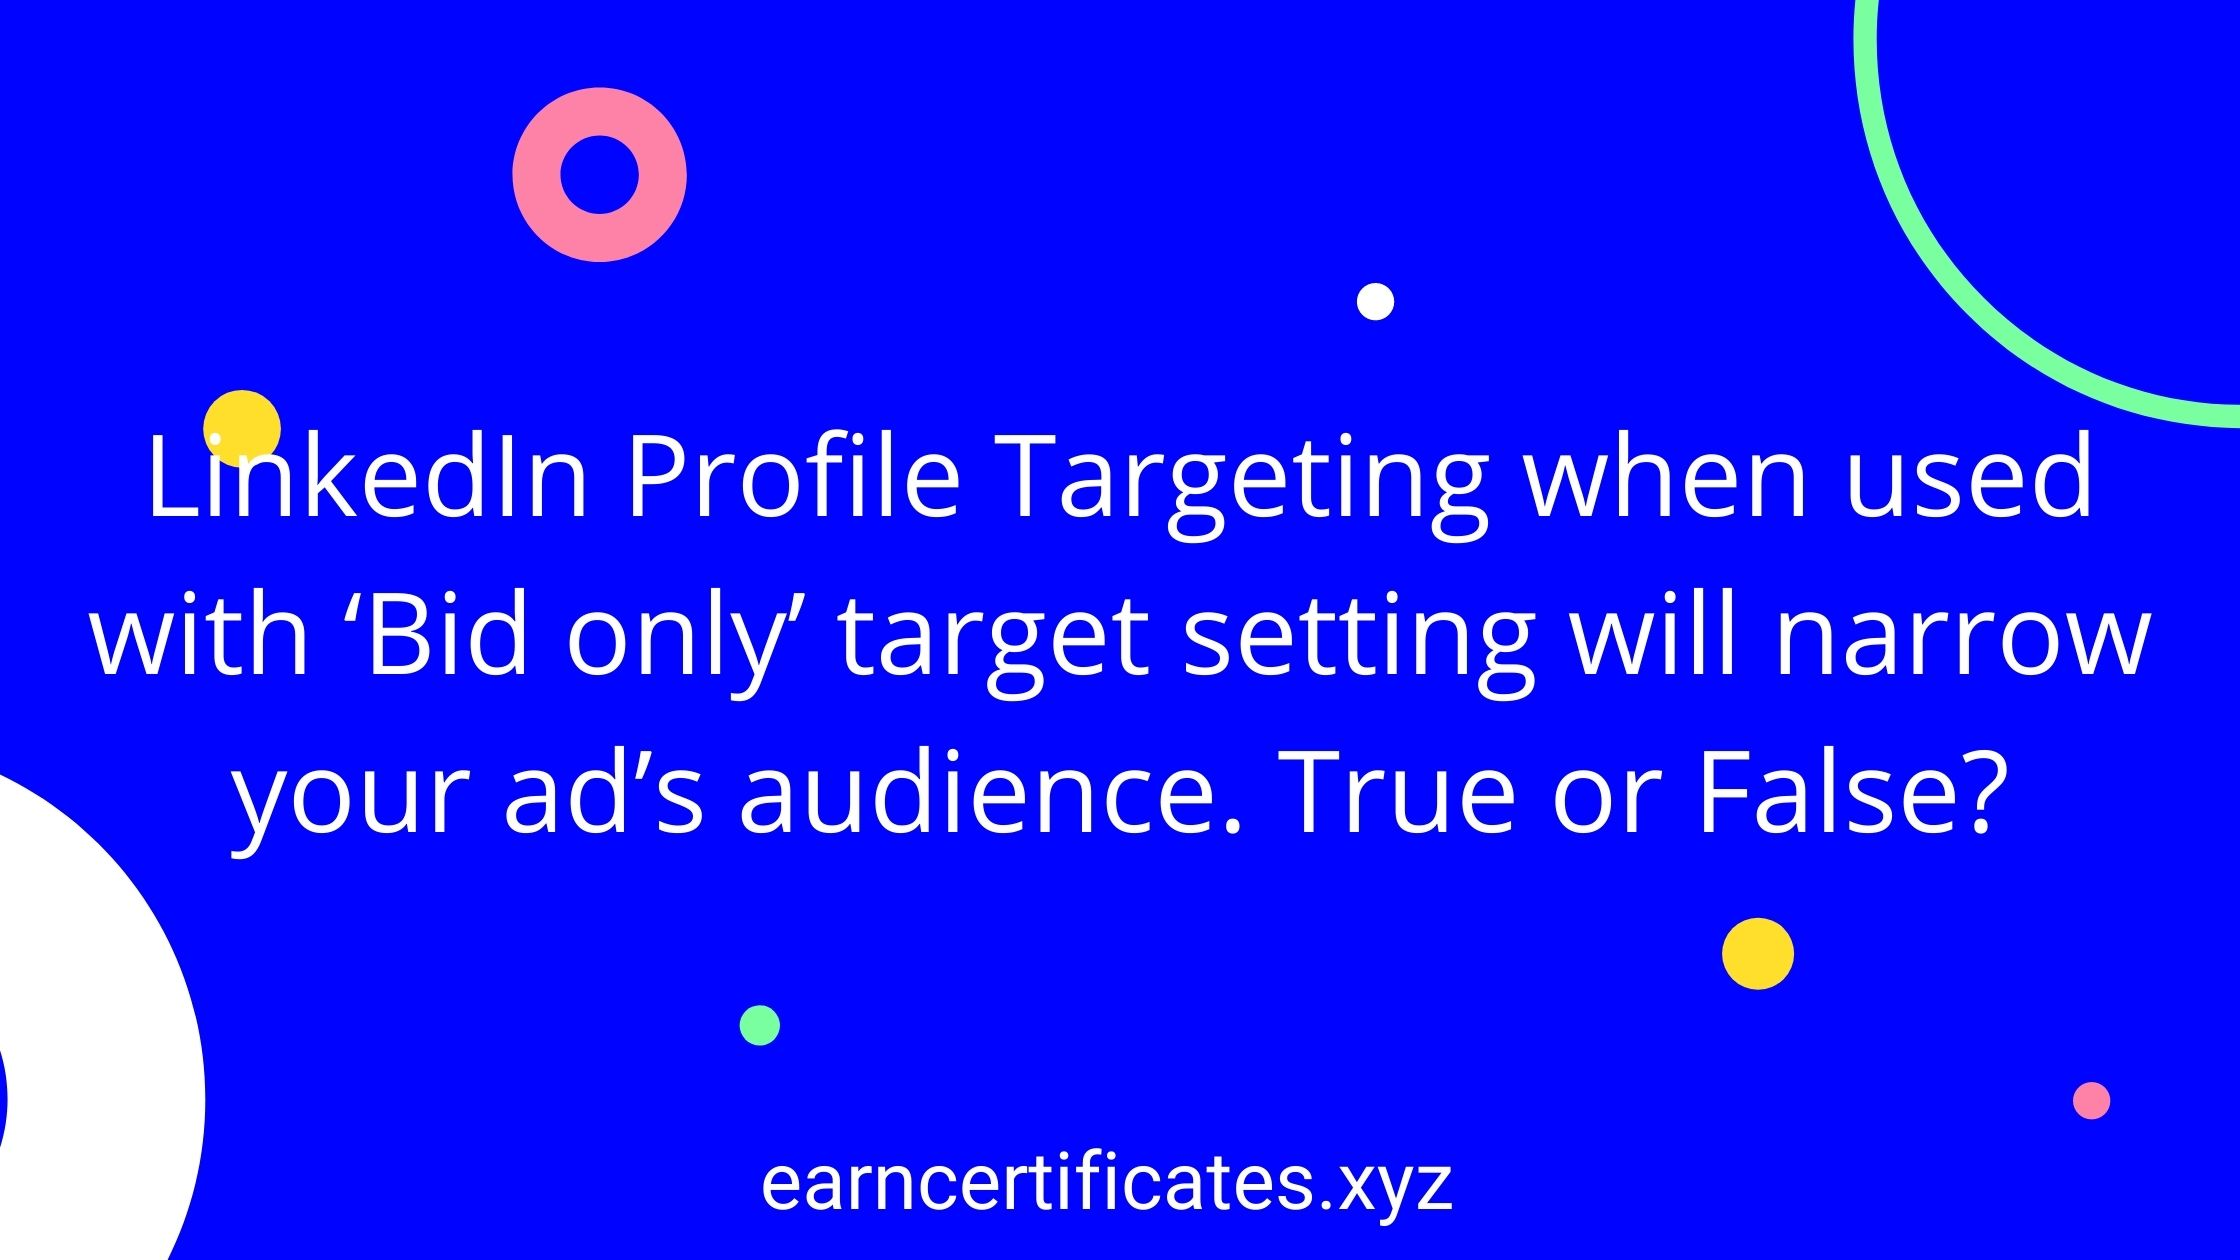 LinkedIn Profile Targeting when used with 'Bid only' target setting will narrow your ad's audience. True or False?